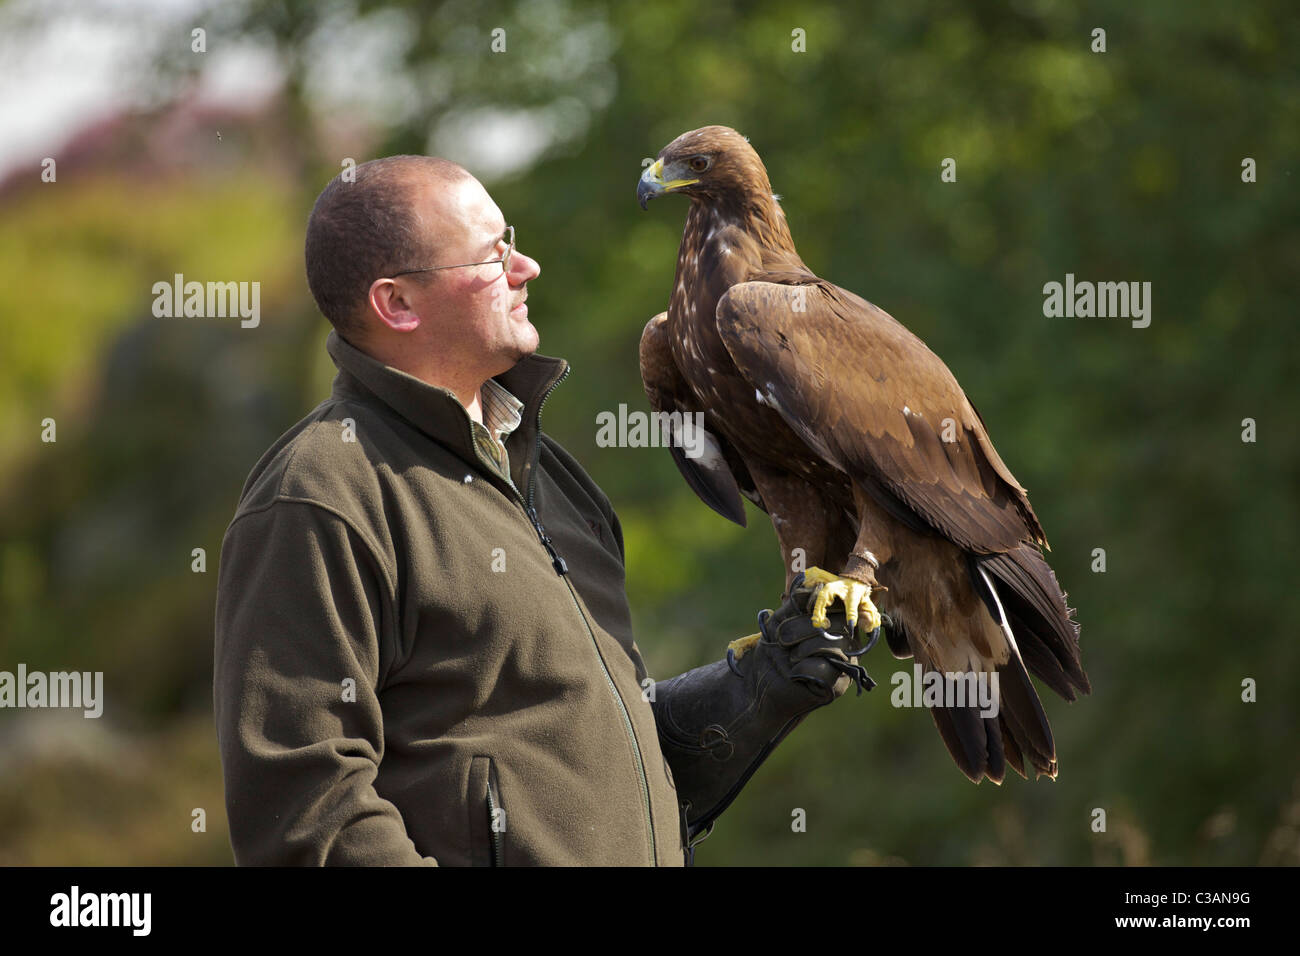 Golden eagle, Aquila chrysaetos, with handler, Loughborough, Leicestershire, England, UK, GB, - Stock Image